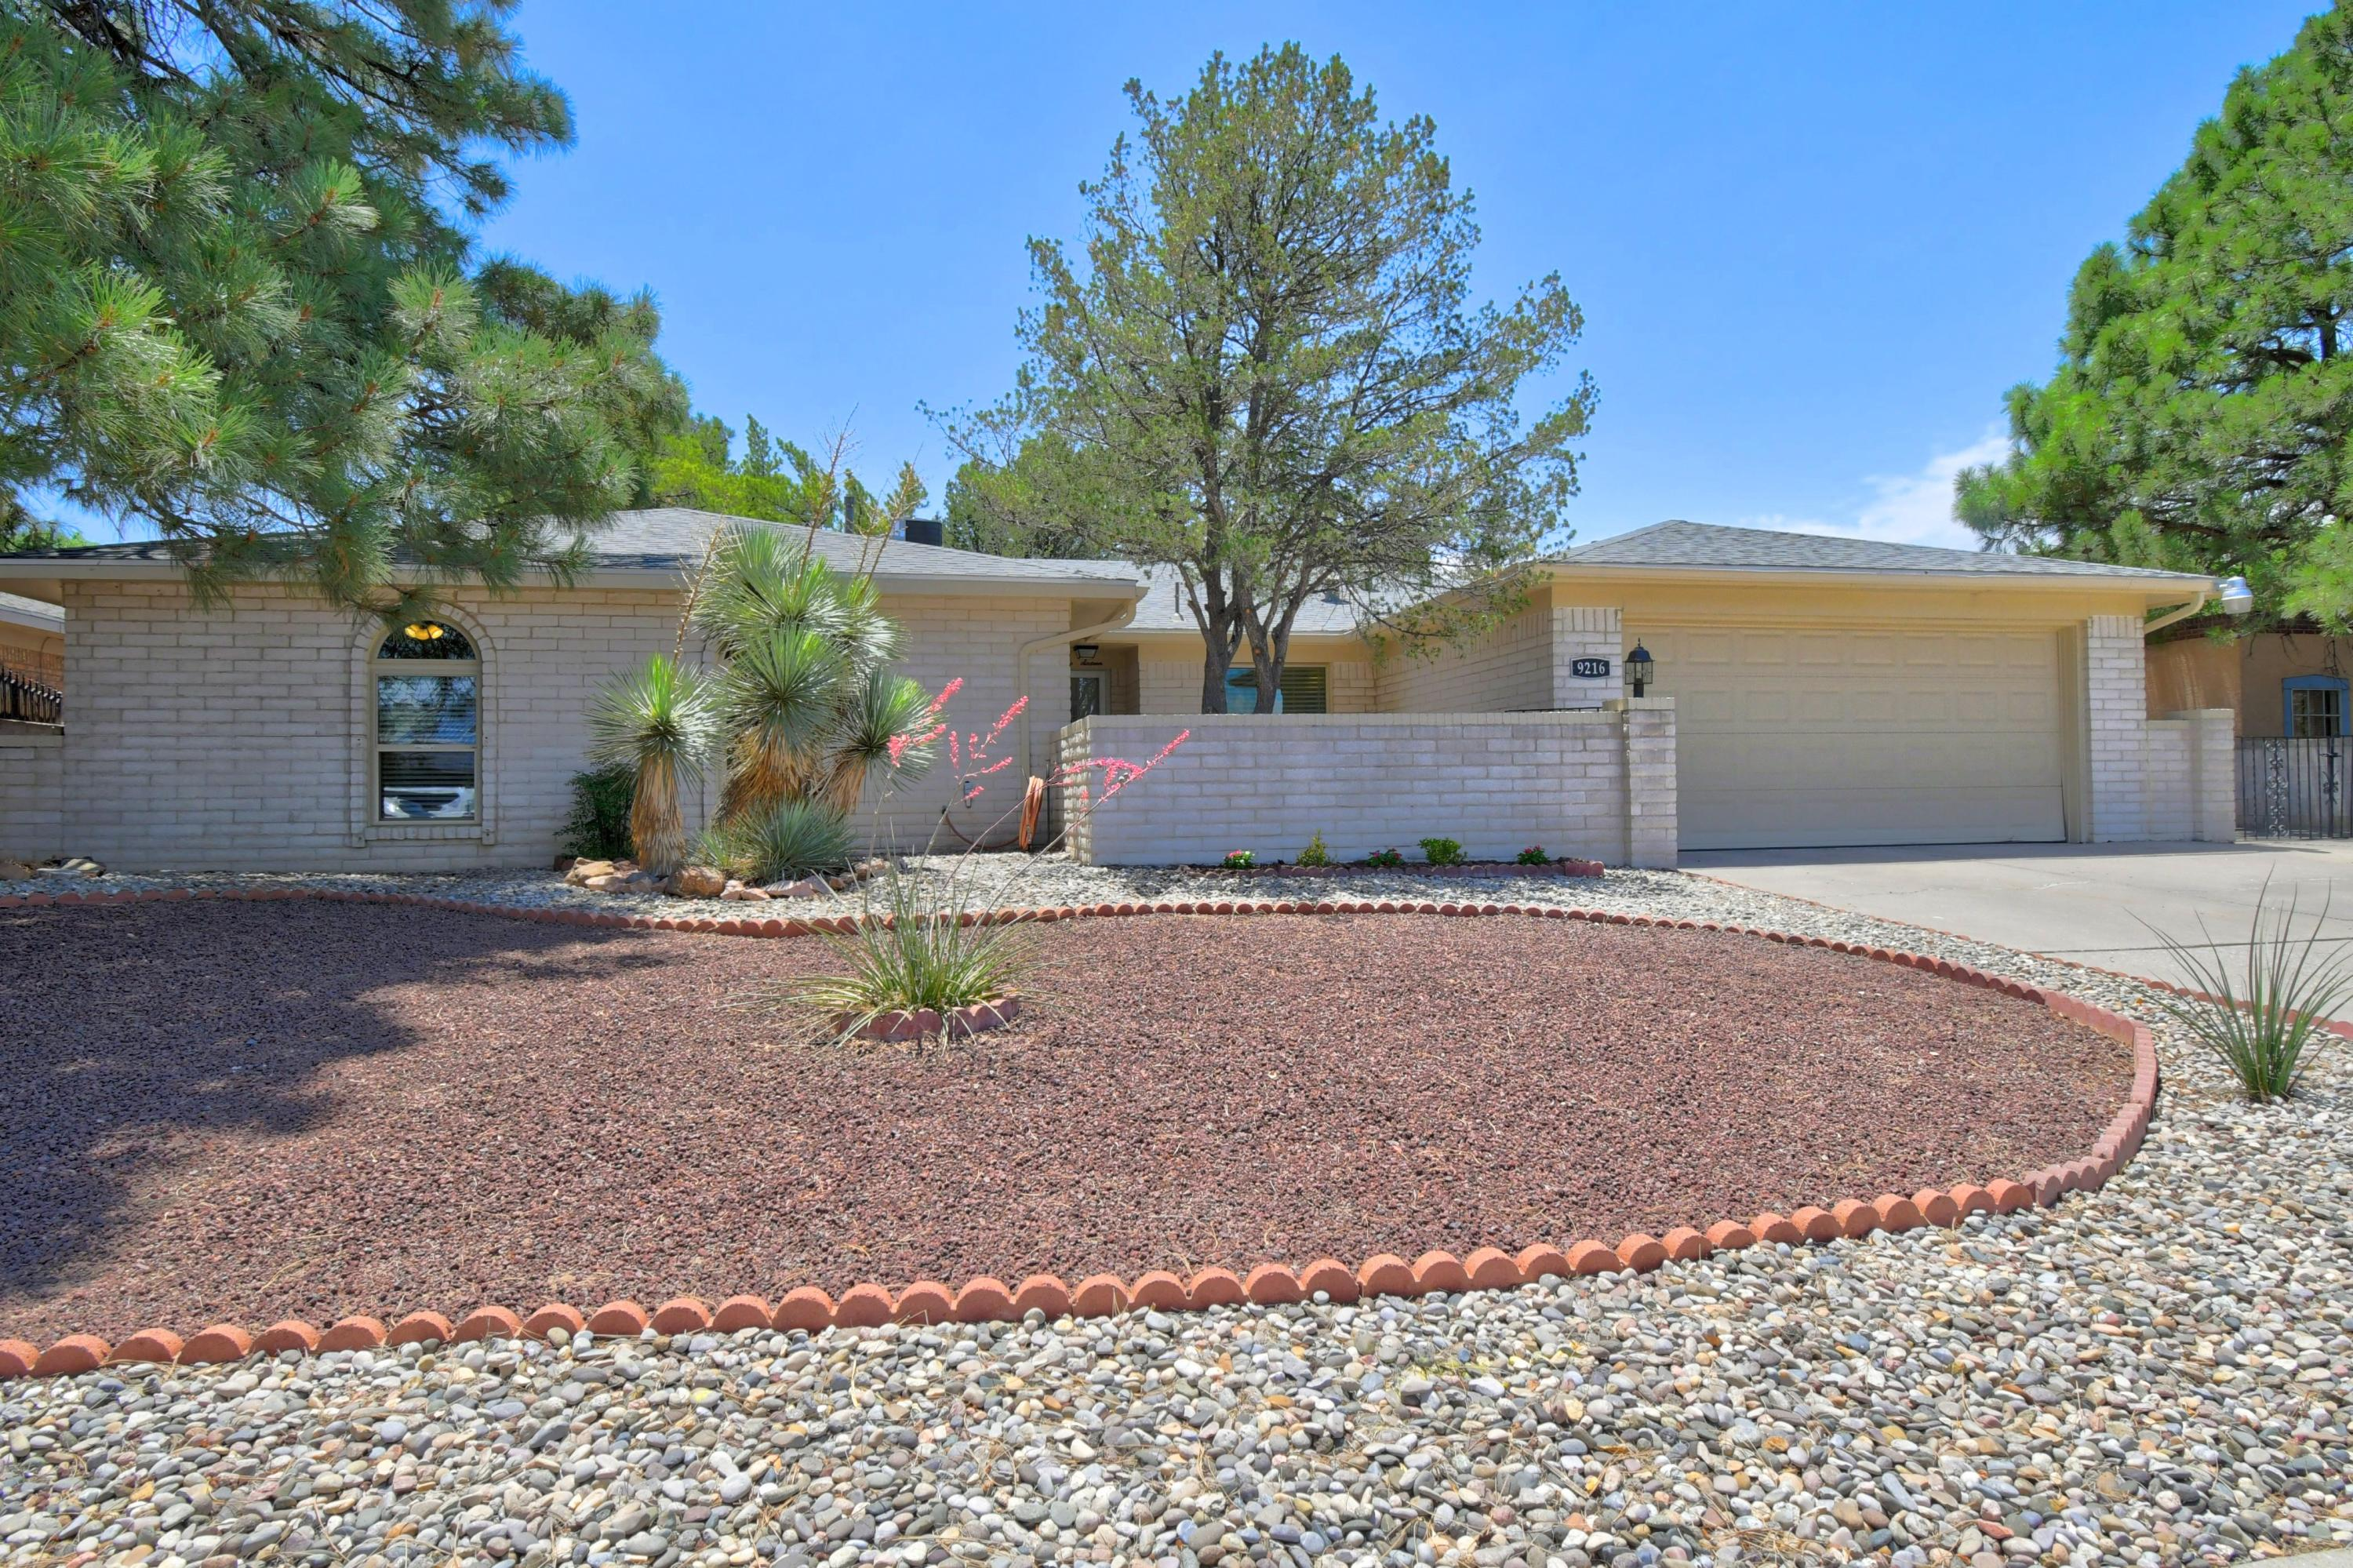 9216 EVANGELINE Avenue NE Property Photo - Albuquerque, NM real estate listing